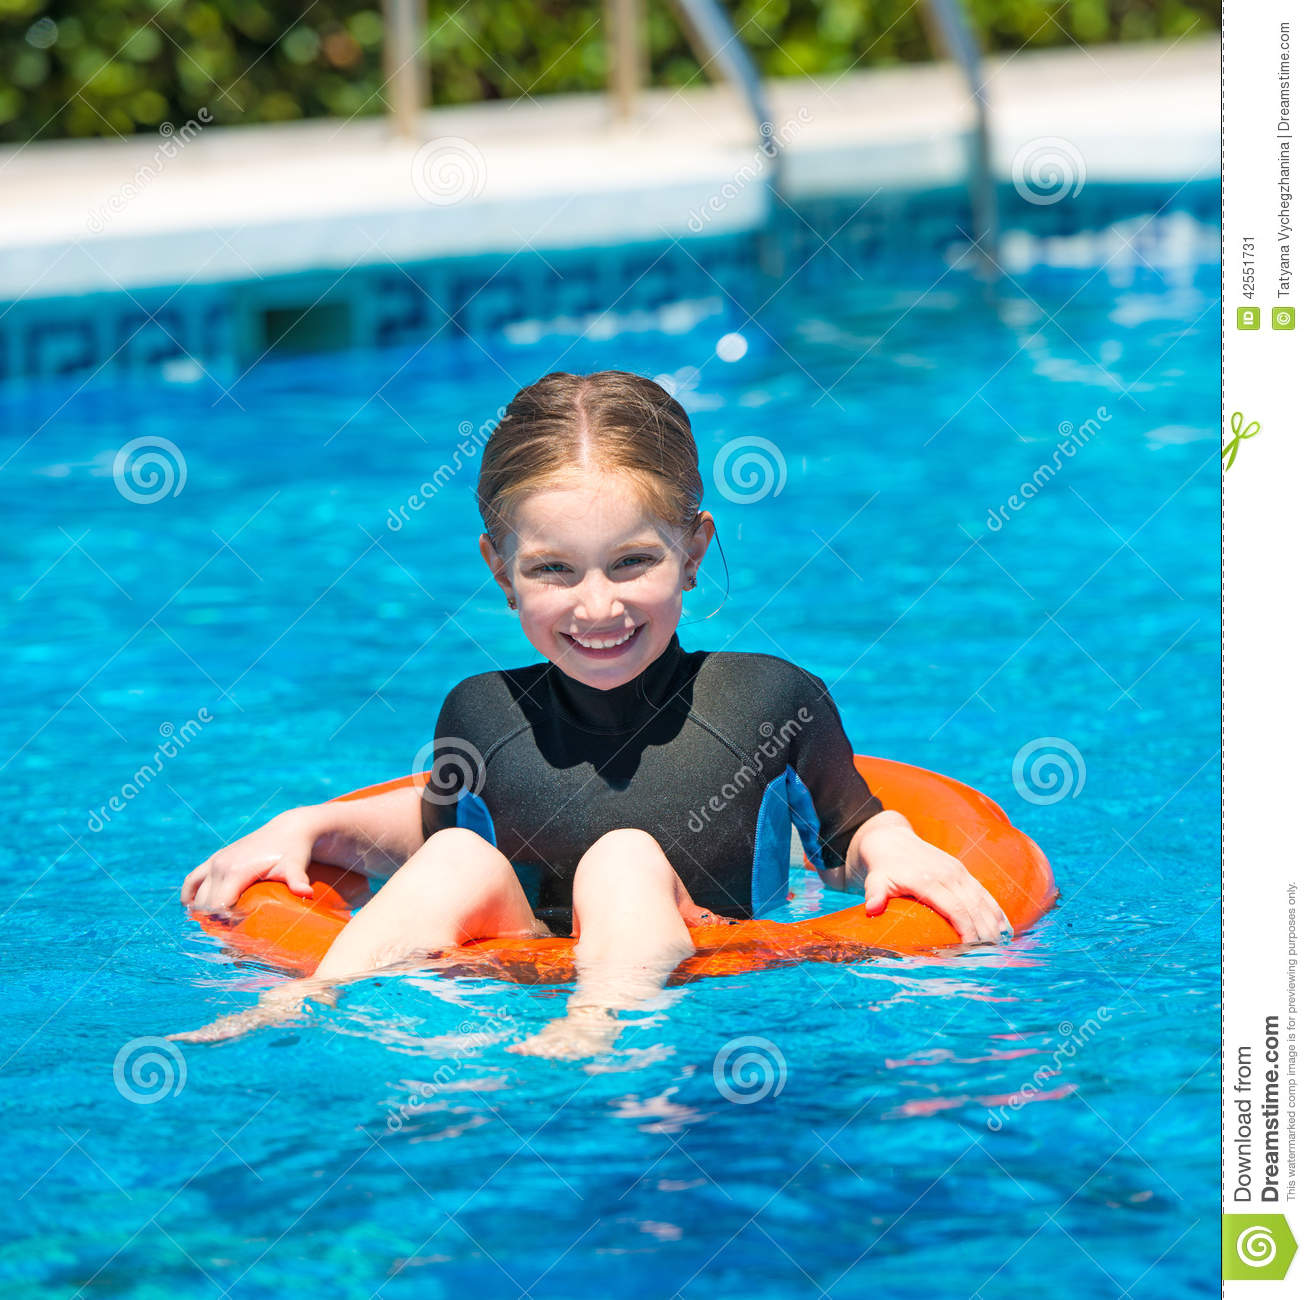 Cute little girl swims in a wetsuit with a lifeline in the pool in summer cc8d22fea